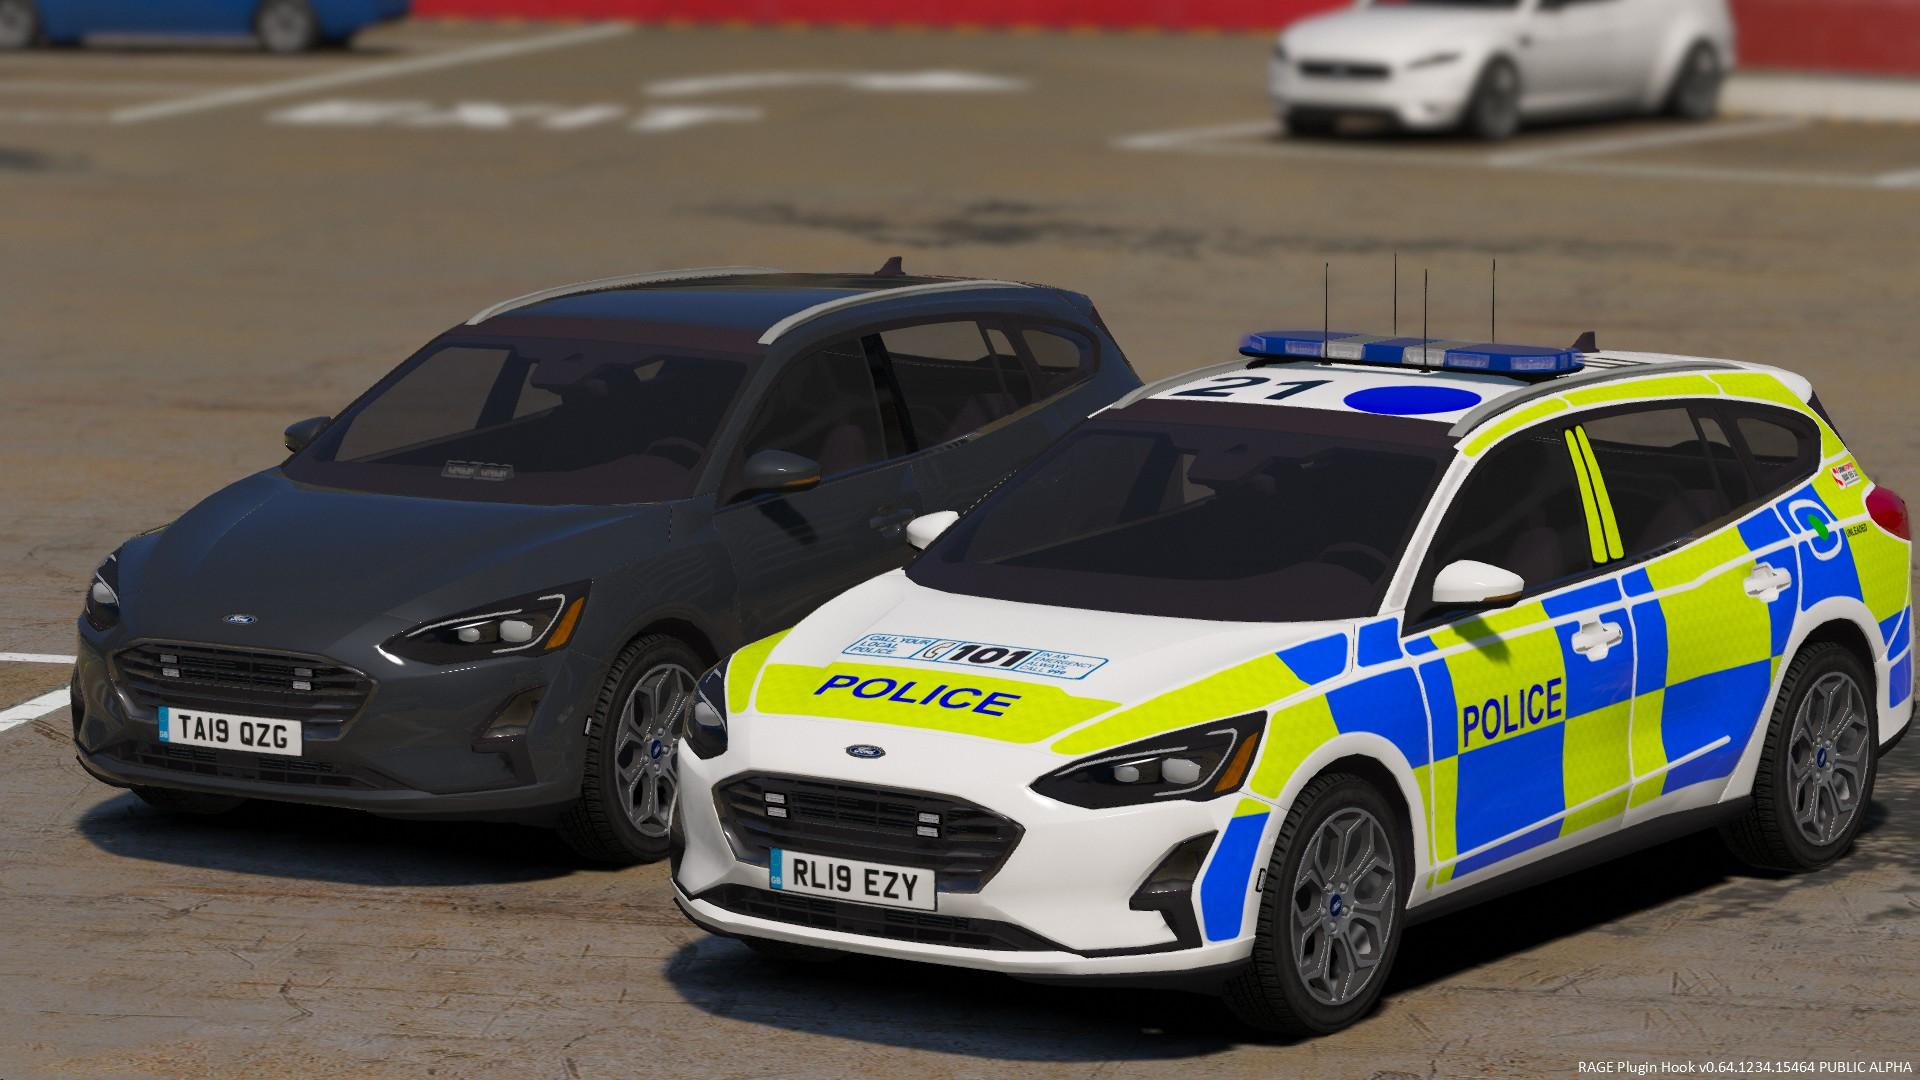 police 2019 ford focus wagon marked   unmarked